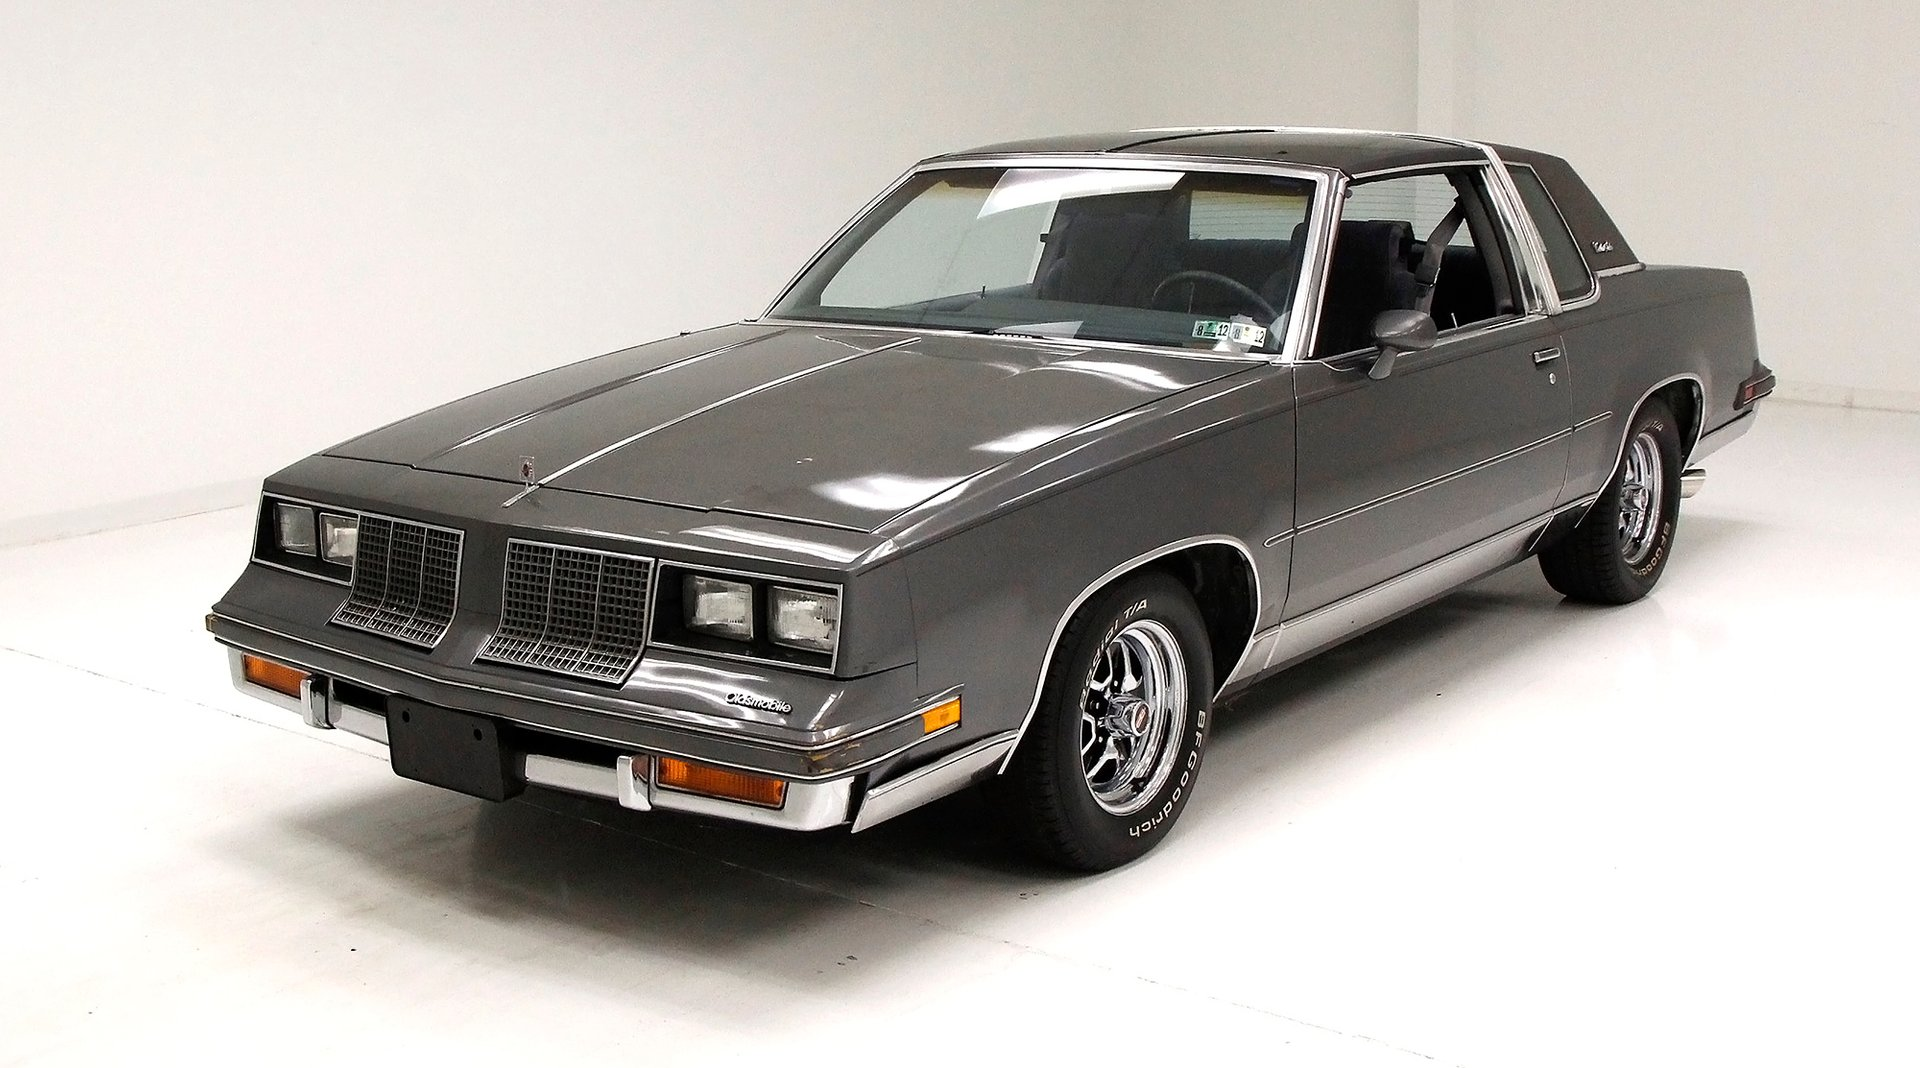 1985 Oldsmobile Cutlass Salon